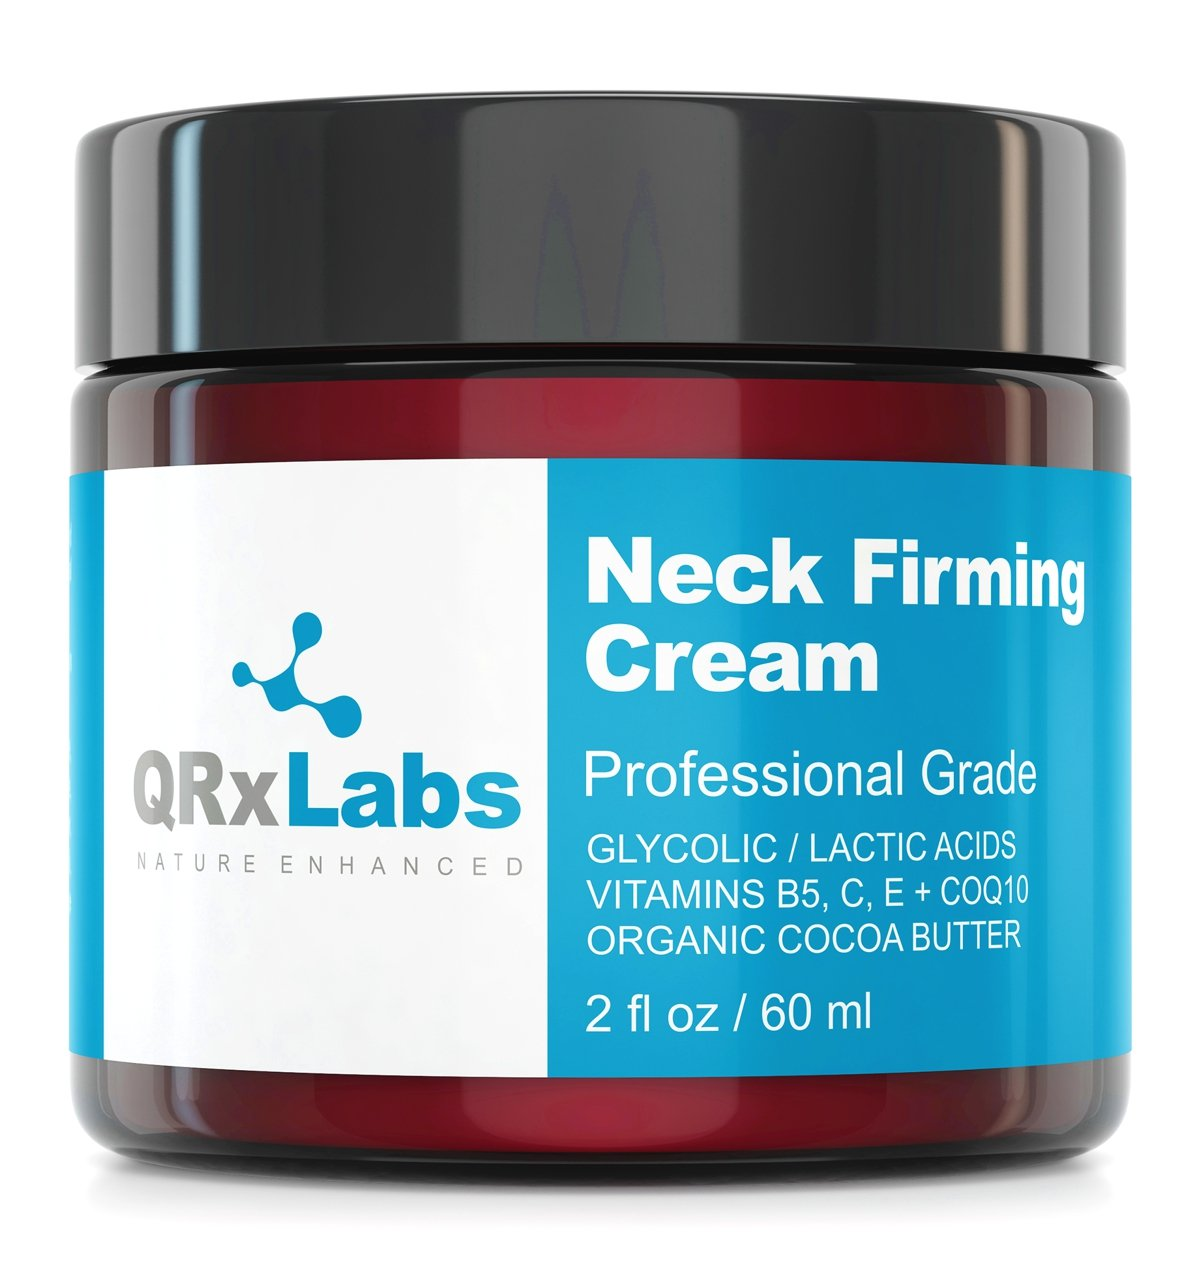 Neck Firming Cream - Tightening & Lifting Moisturizer for Loose, Wrinkled or Sagging Skin on Neck, Decollete & Chest - Best to Prevent Turkey/Crepe Neck - 2 fl oz by QRxLabs